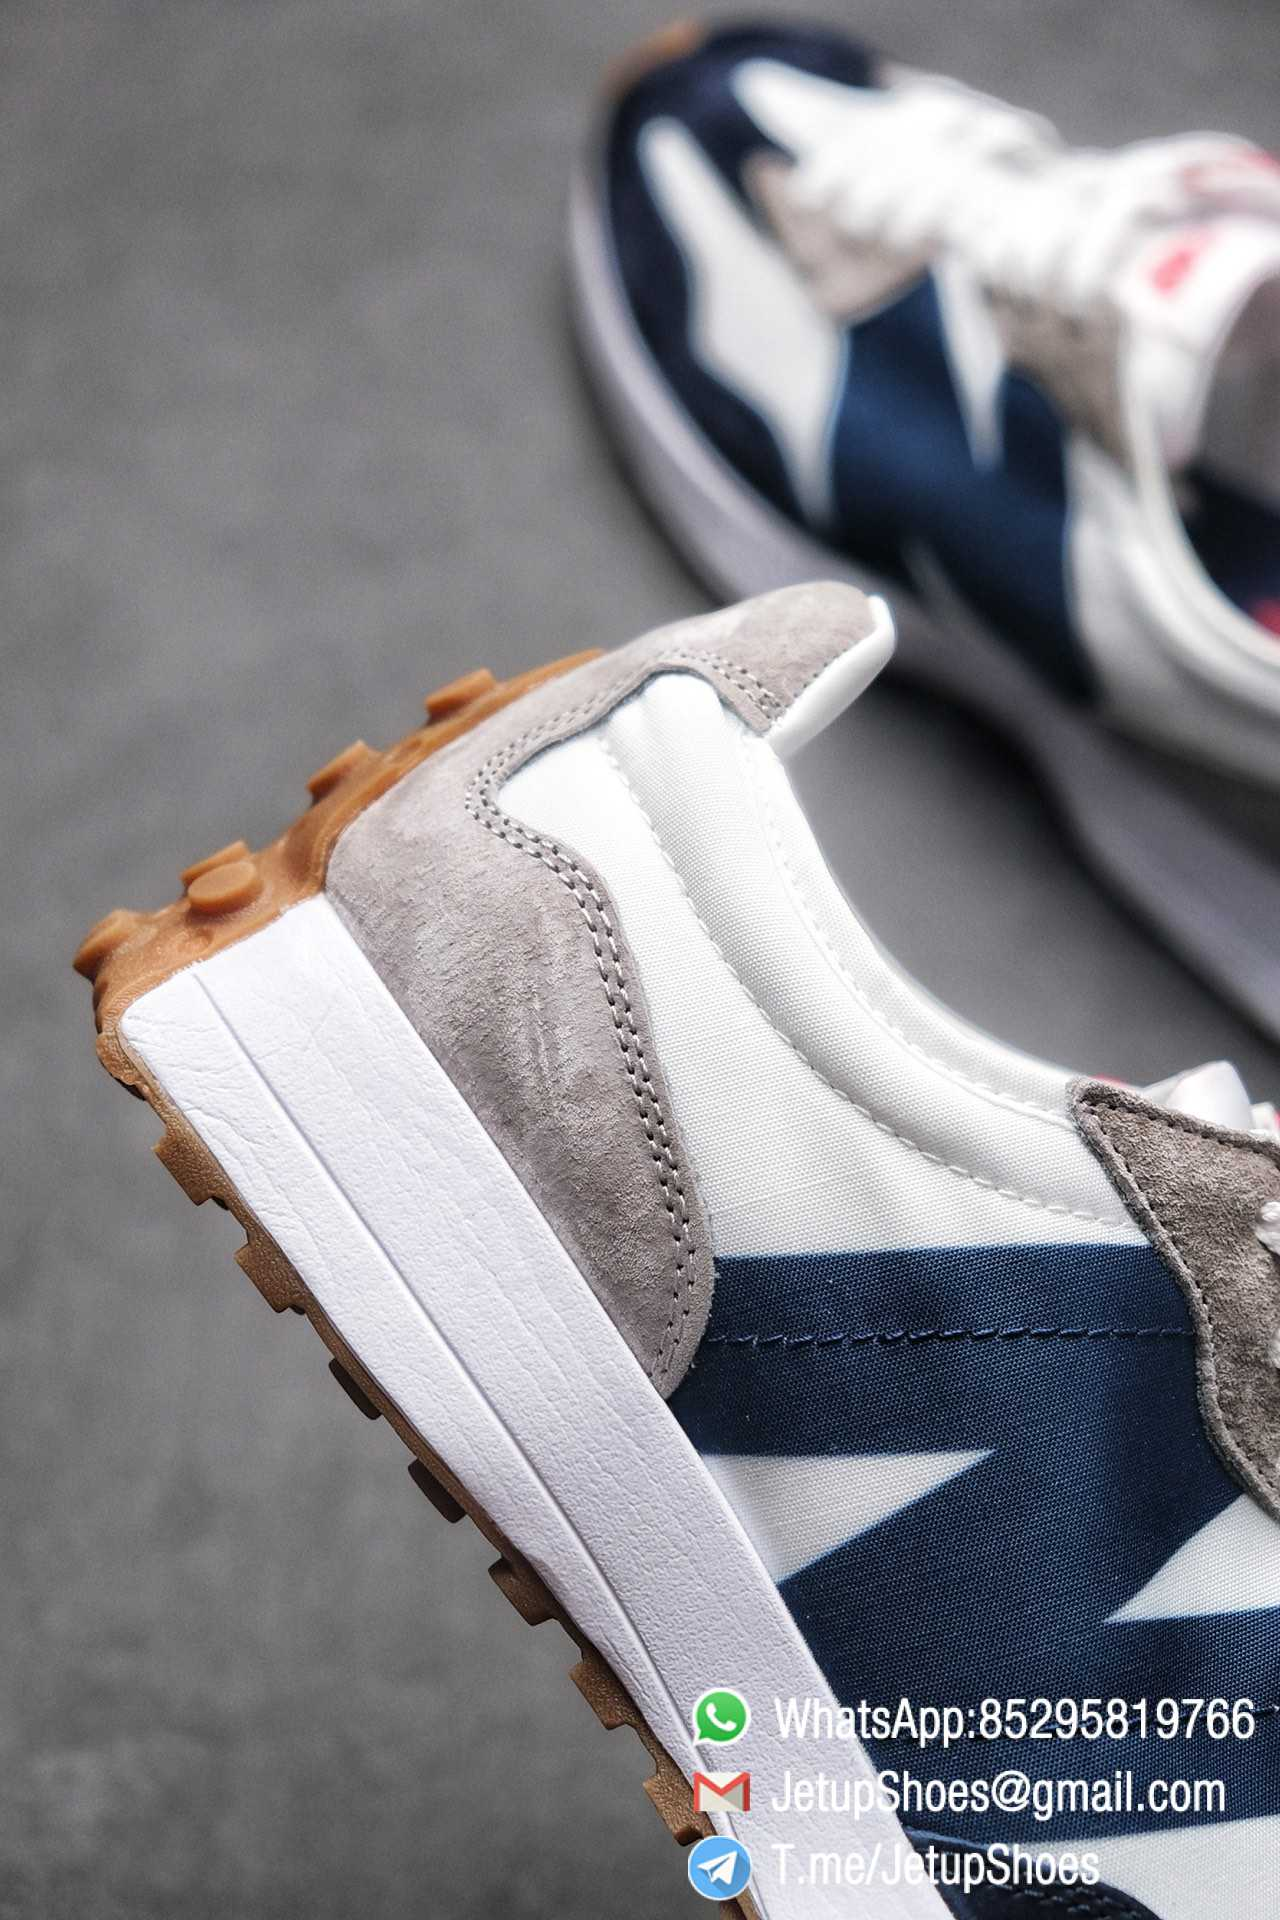 Best Replica New Balance 327 Navy White Gum Running Shoes SKU MS327WR Top Quality Snkrs 06